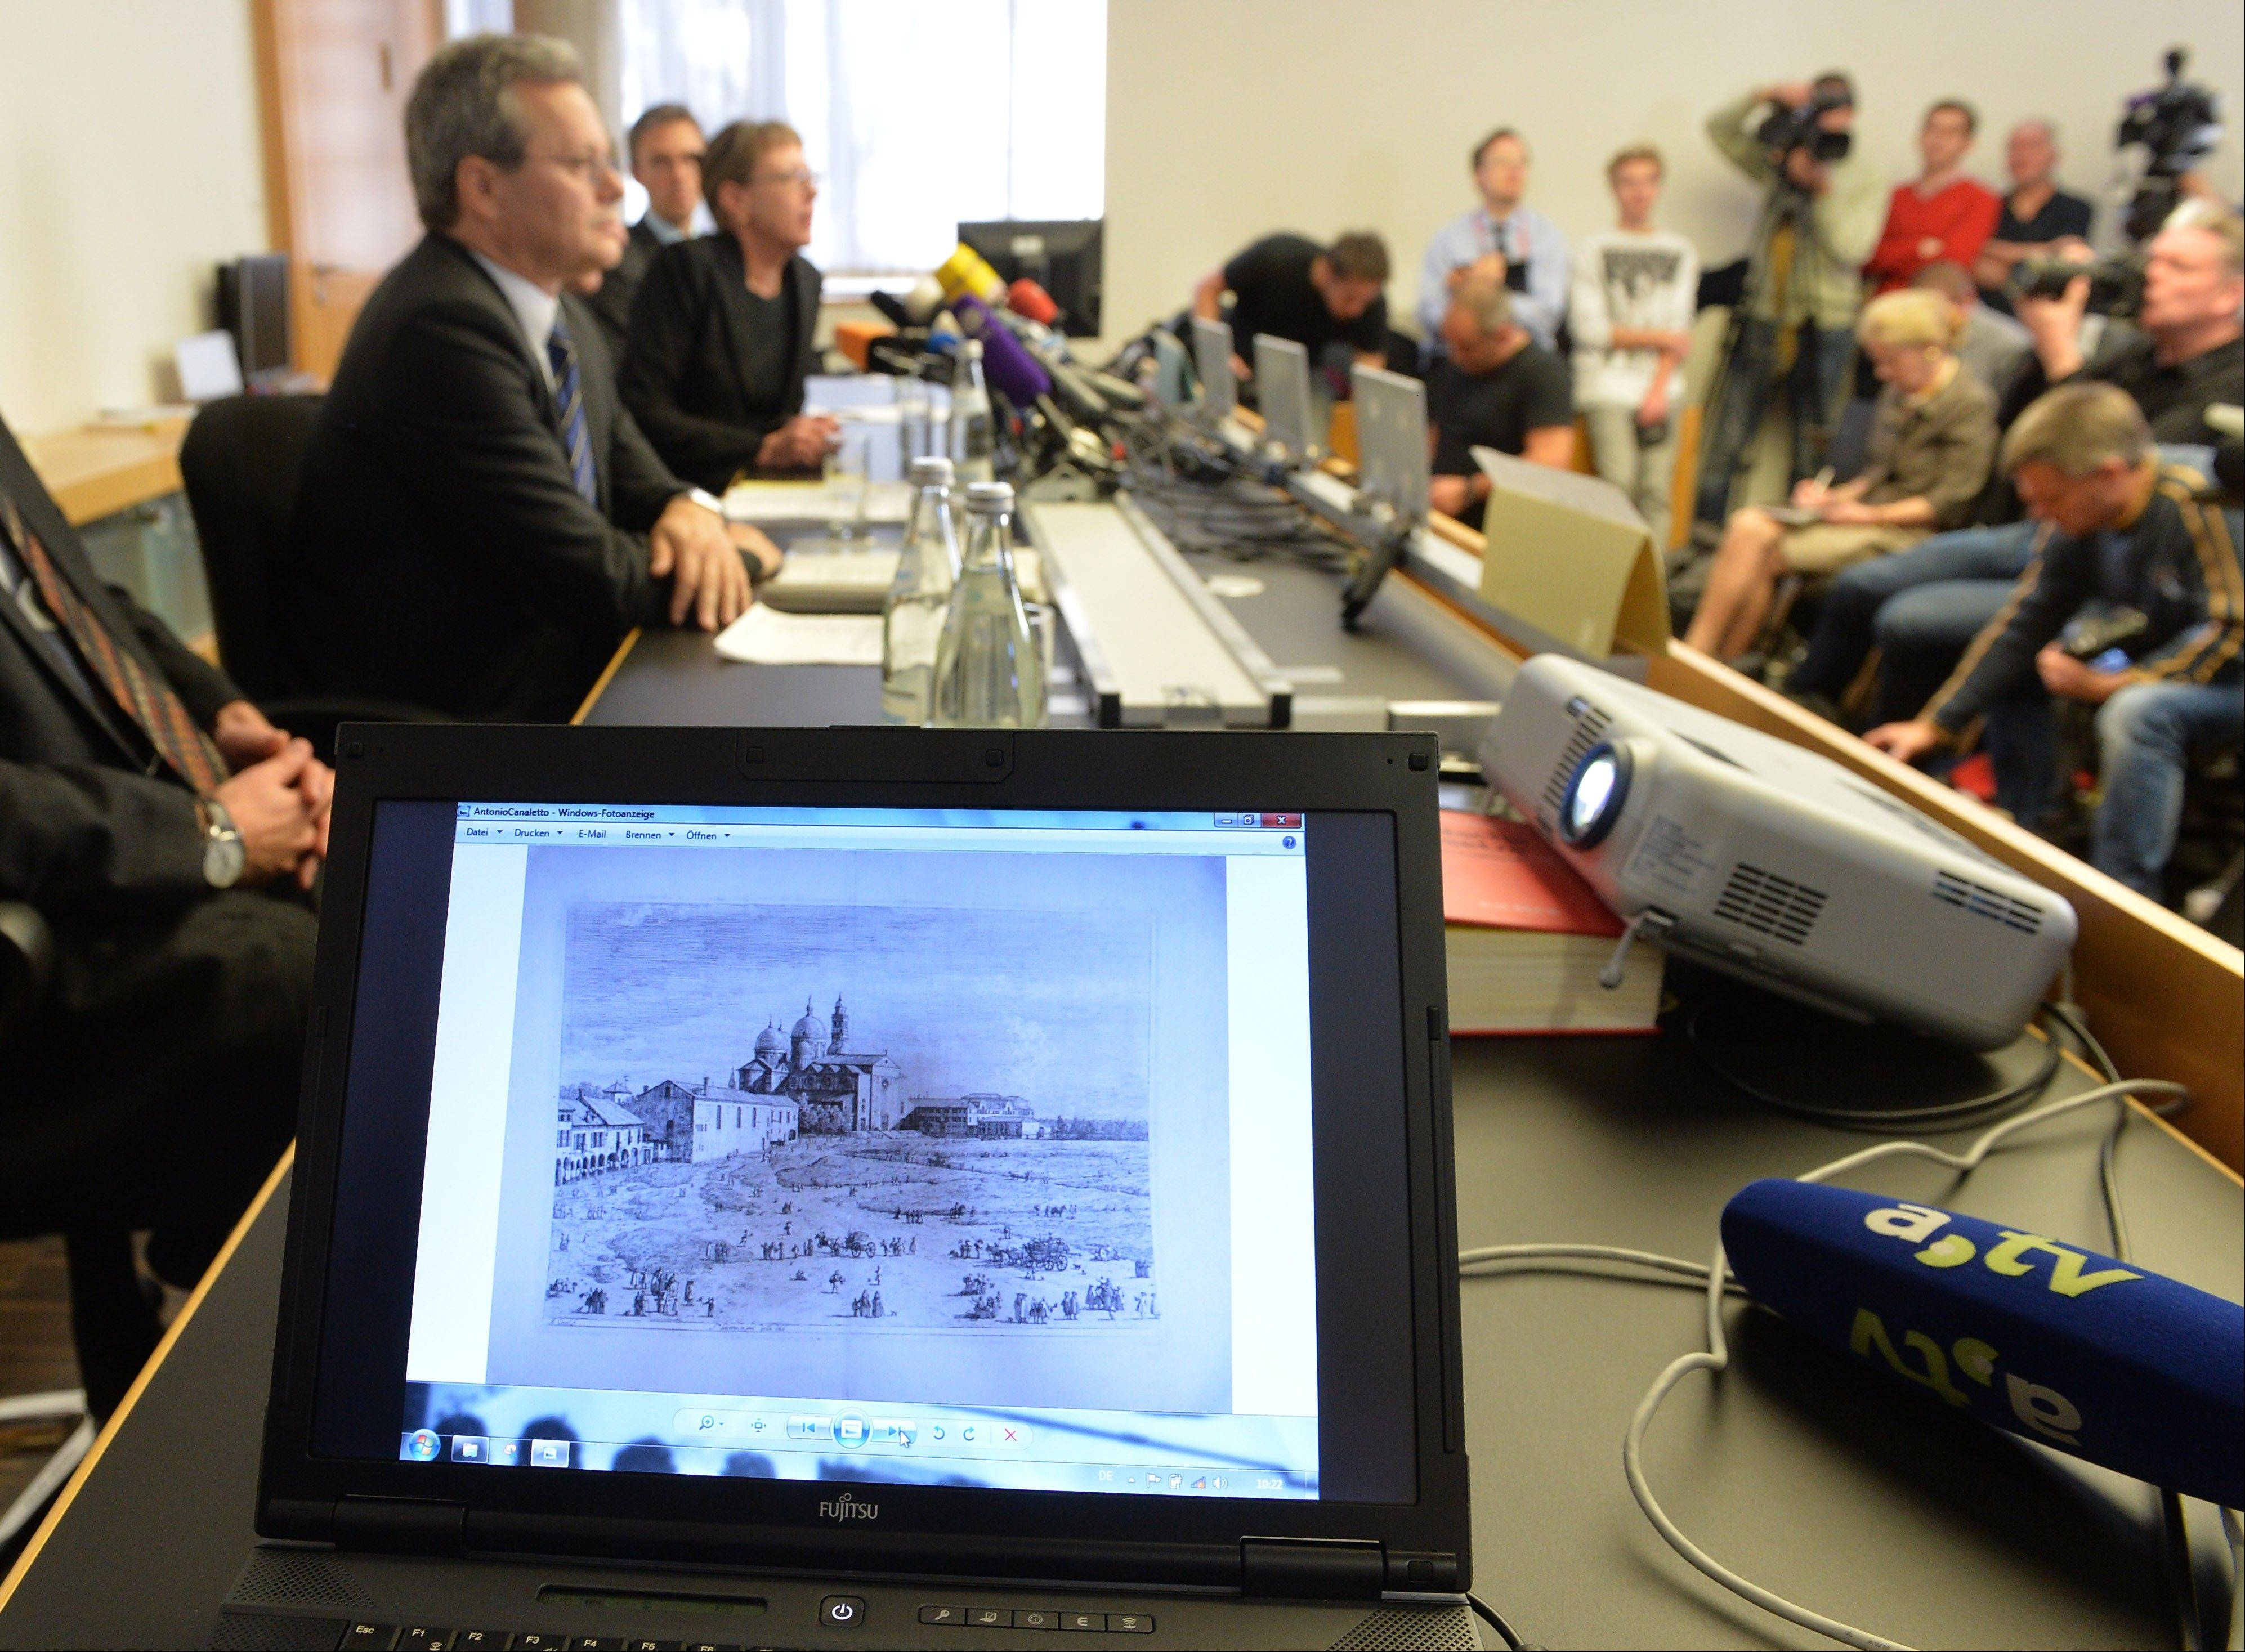 An artwork of Antonio Canaletto is shown on a computer screen during a news conference in Augsburg, southern Germany, Tuesday, Nov. 5, 2013, on the art found in Munich. A hoard of more than 1,400 art works found last year at a Munich apartment includes previously unknown pieces by artists including Marc Chagall, German investigators said Tuesday, adding that they face a hugely complicated task to establish where the art came from.